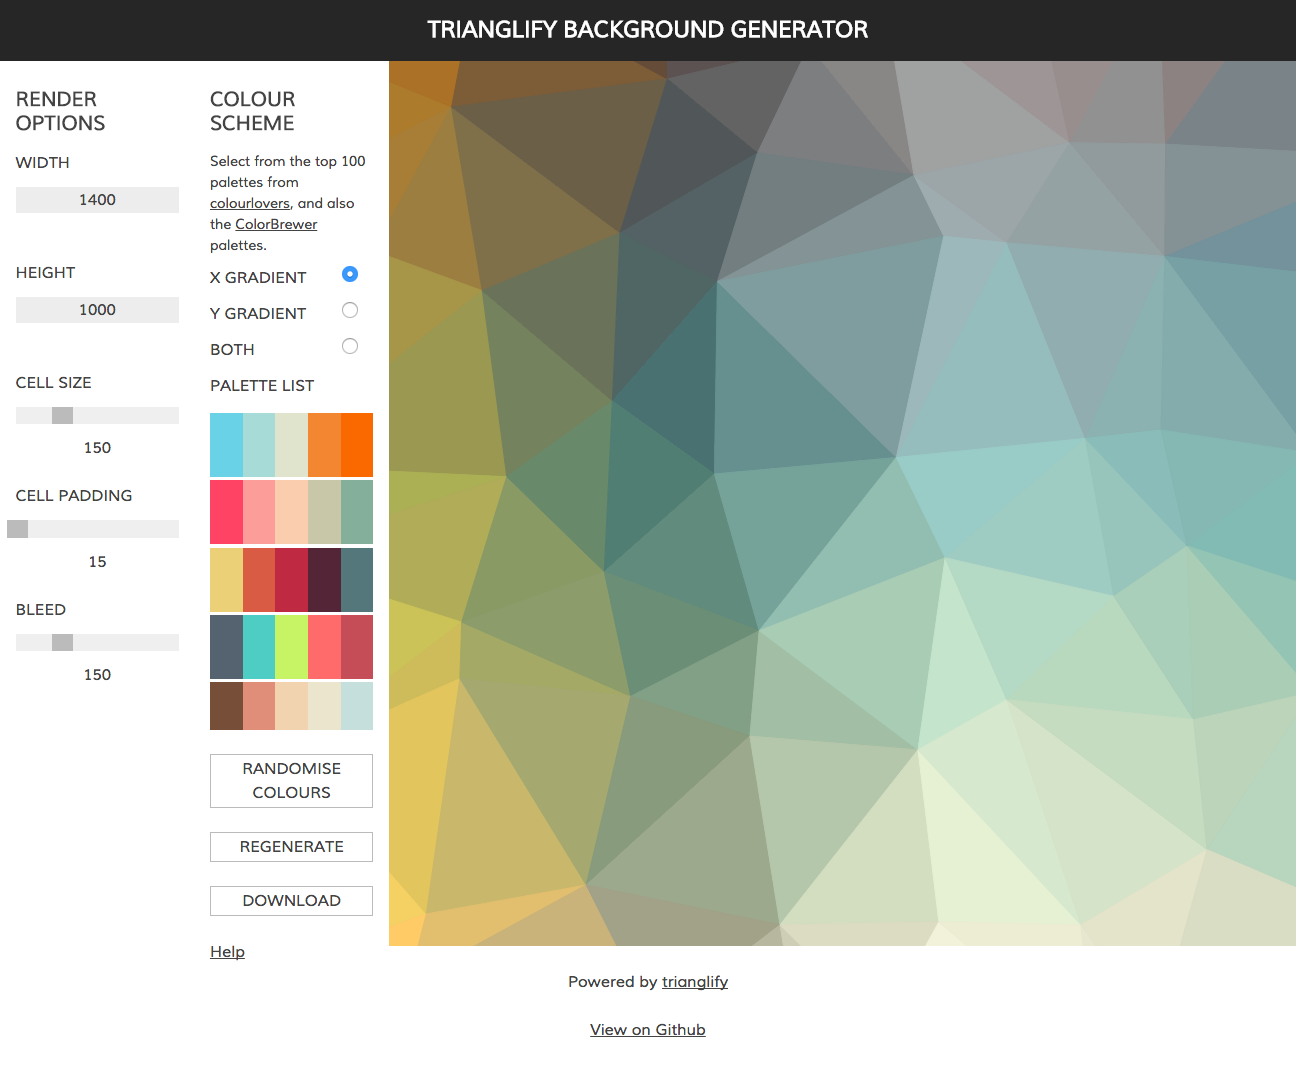 TRIANGLIFY BACKGROUND GENERATOR | Design: Digital | Pinterest ...